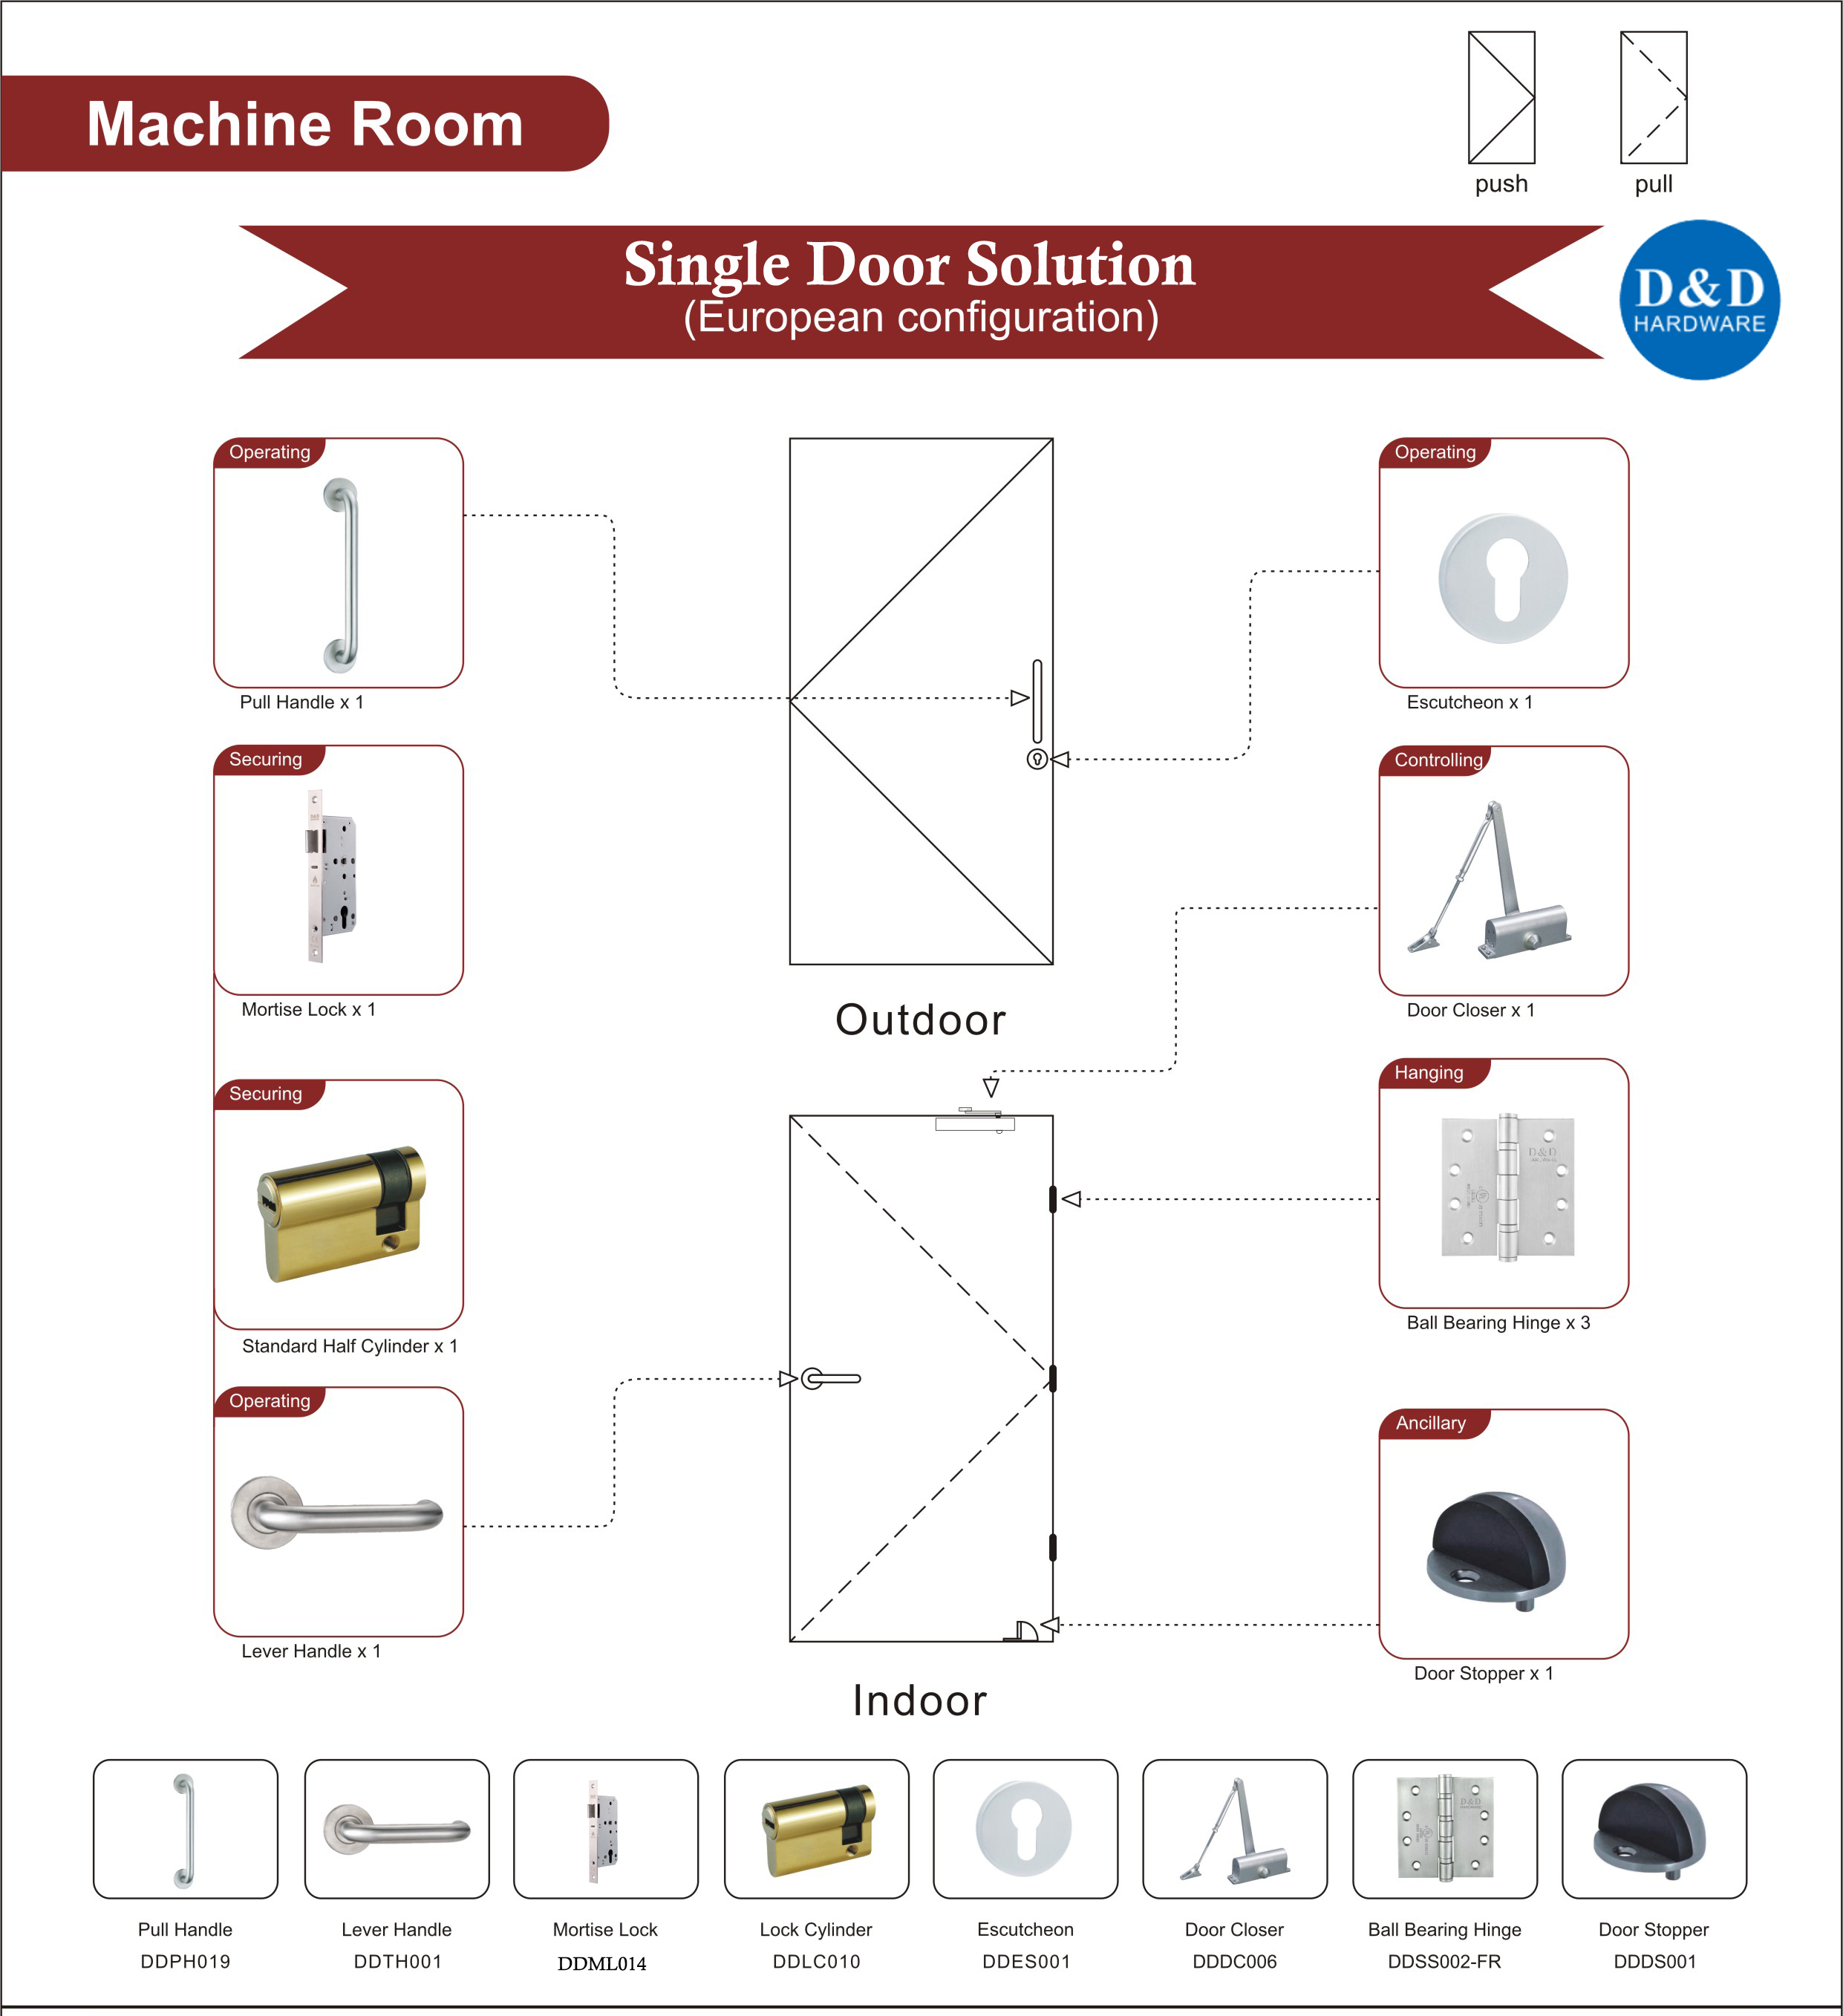 Machine Room Single Door Solution-D&D Hardware